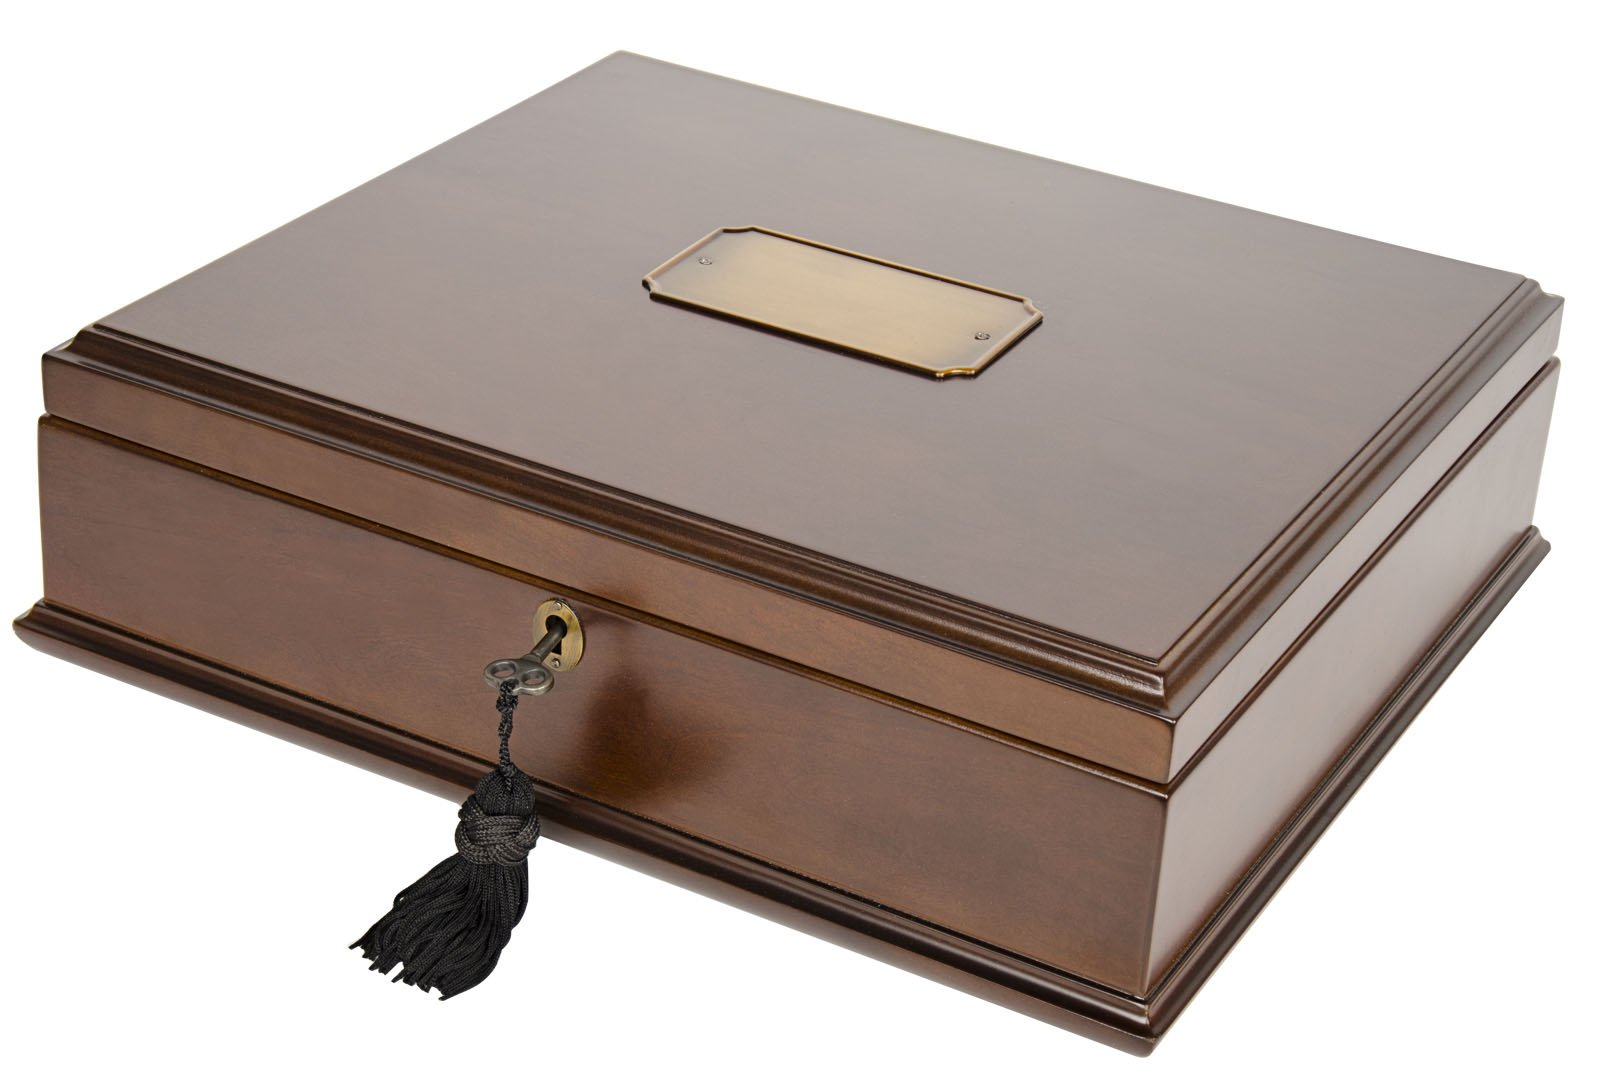 Large Mahogany Wood Finish Memory Storage Keepsakes Treasure Box Organizer with Lock & Key by Arolly